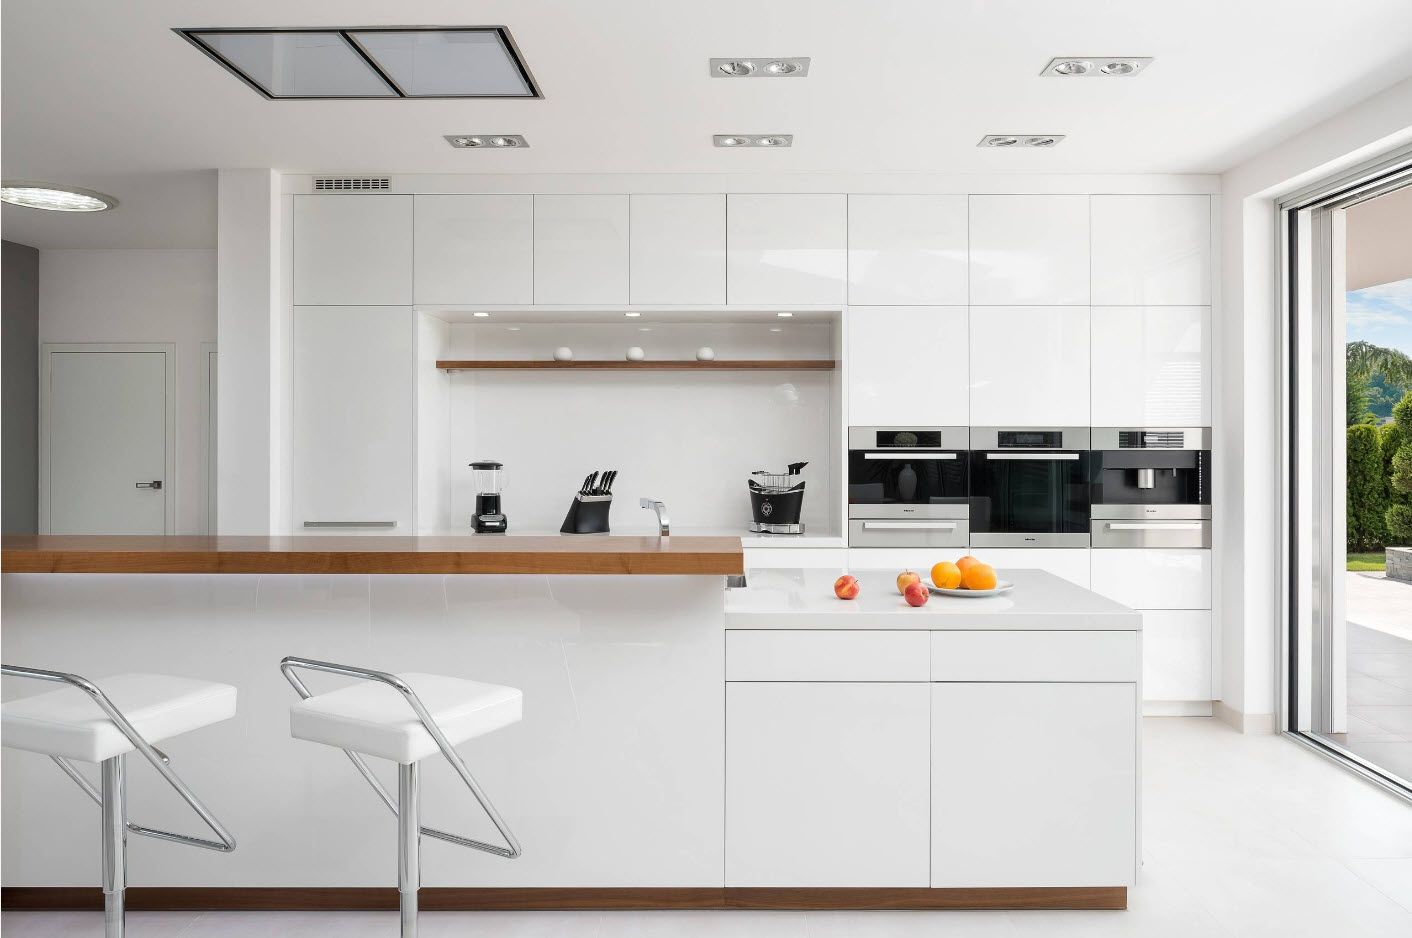 White Scandinavian styled kitchen with wooden countertops